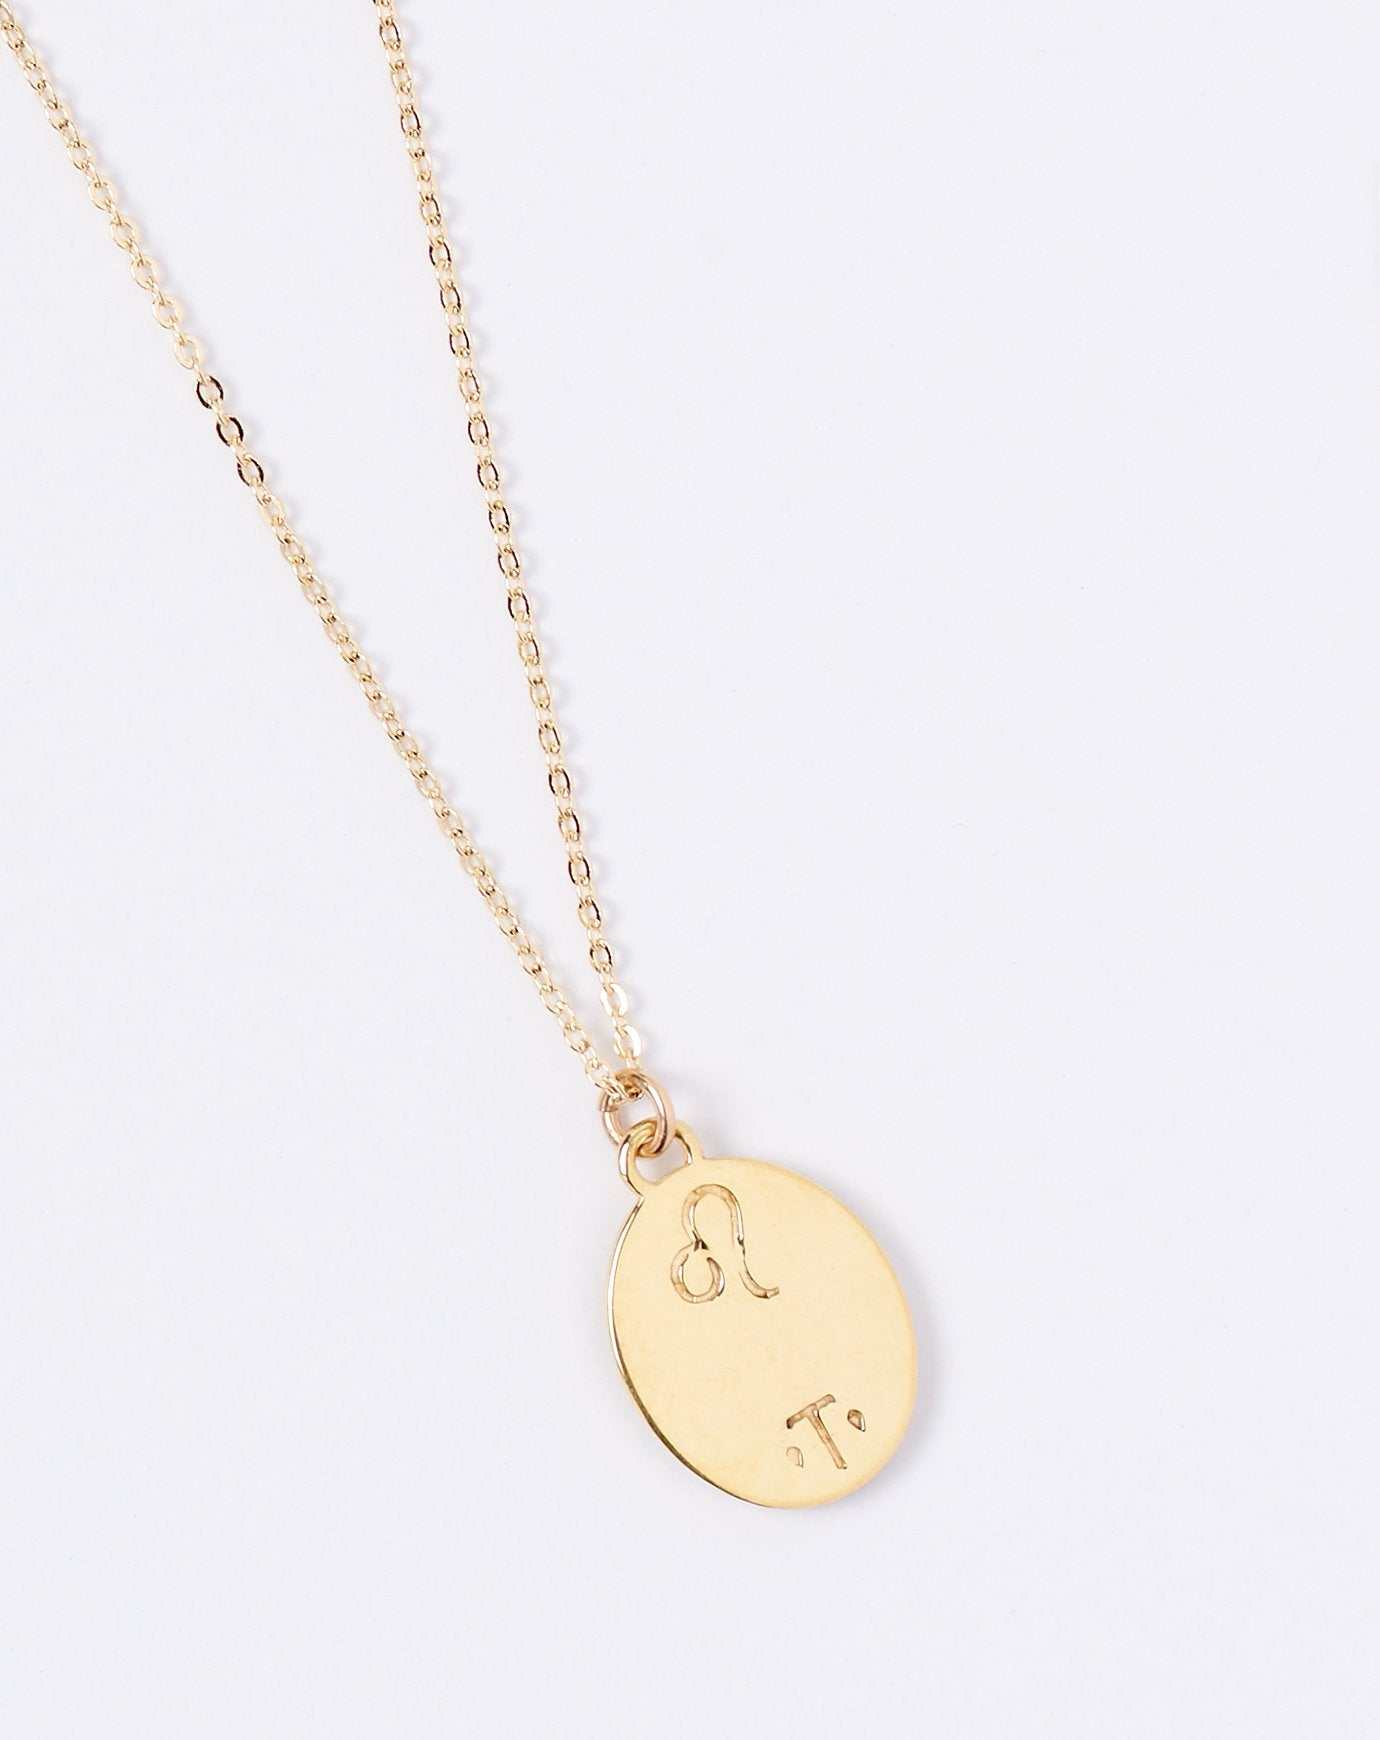 Leo Zodiac Necklace Talon Covet Lou